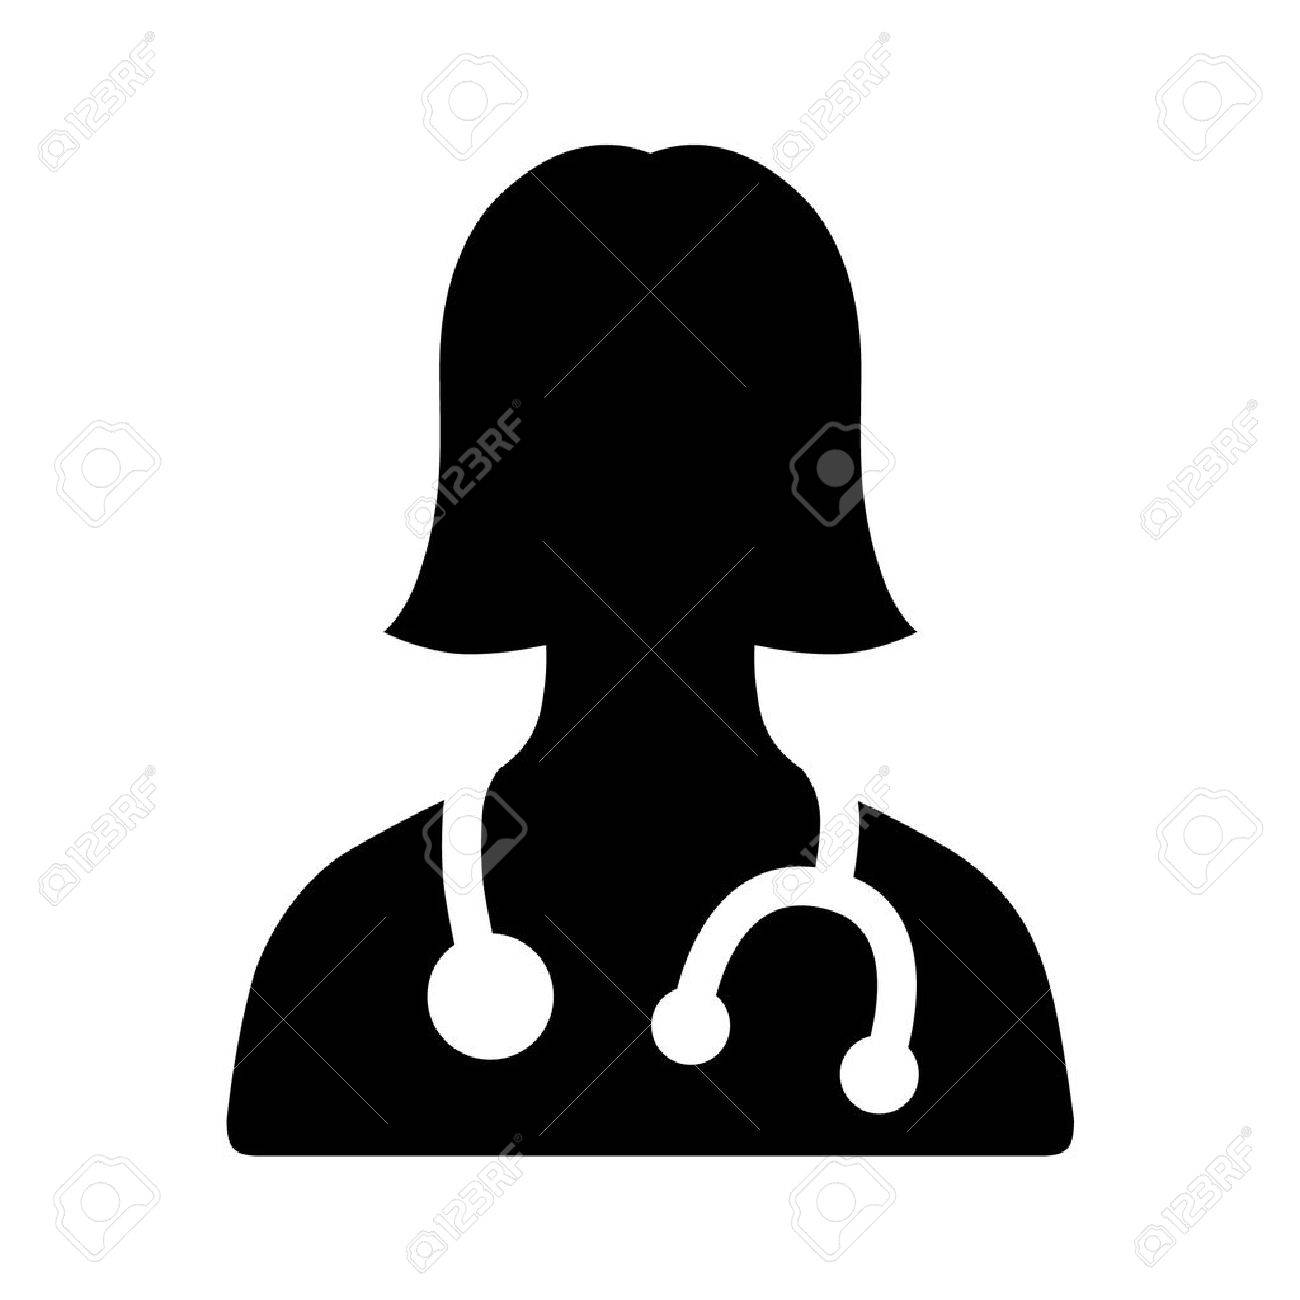 Female physician doctor - a provider of patient care flat icon for apps and websites - 42409532